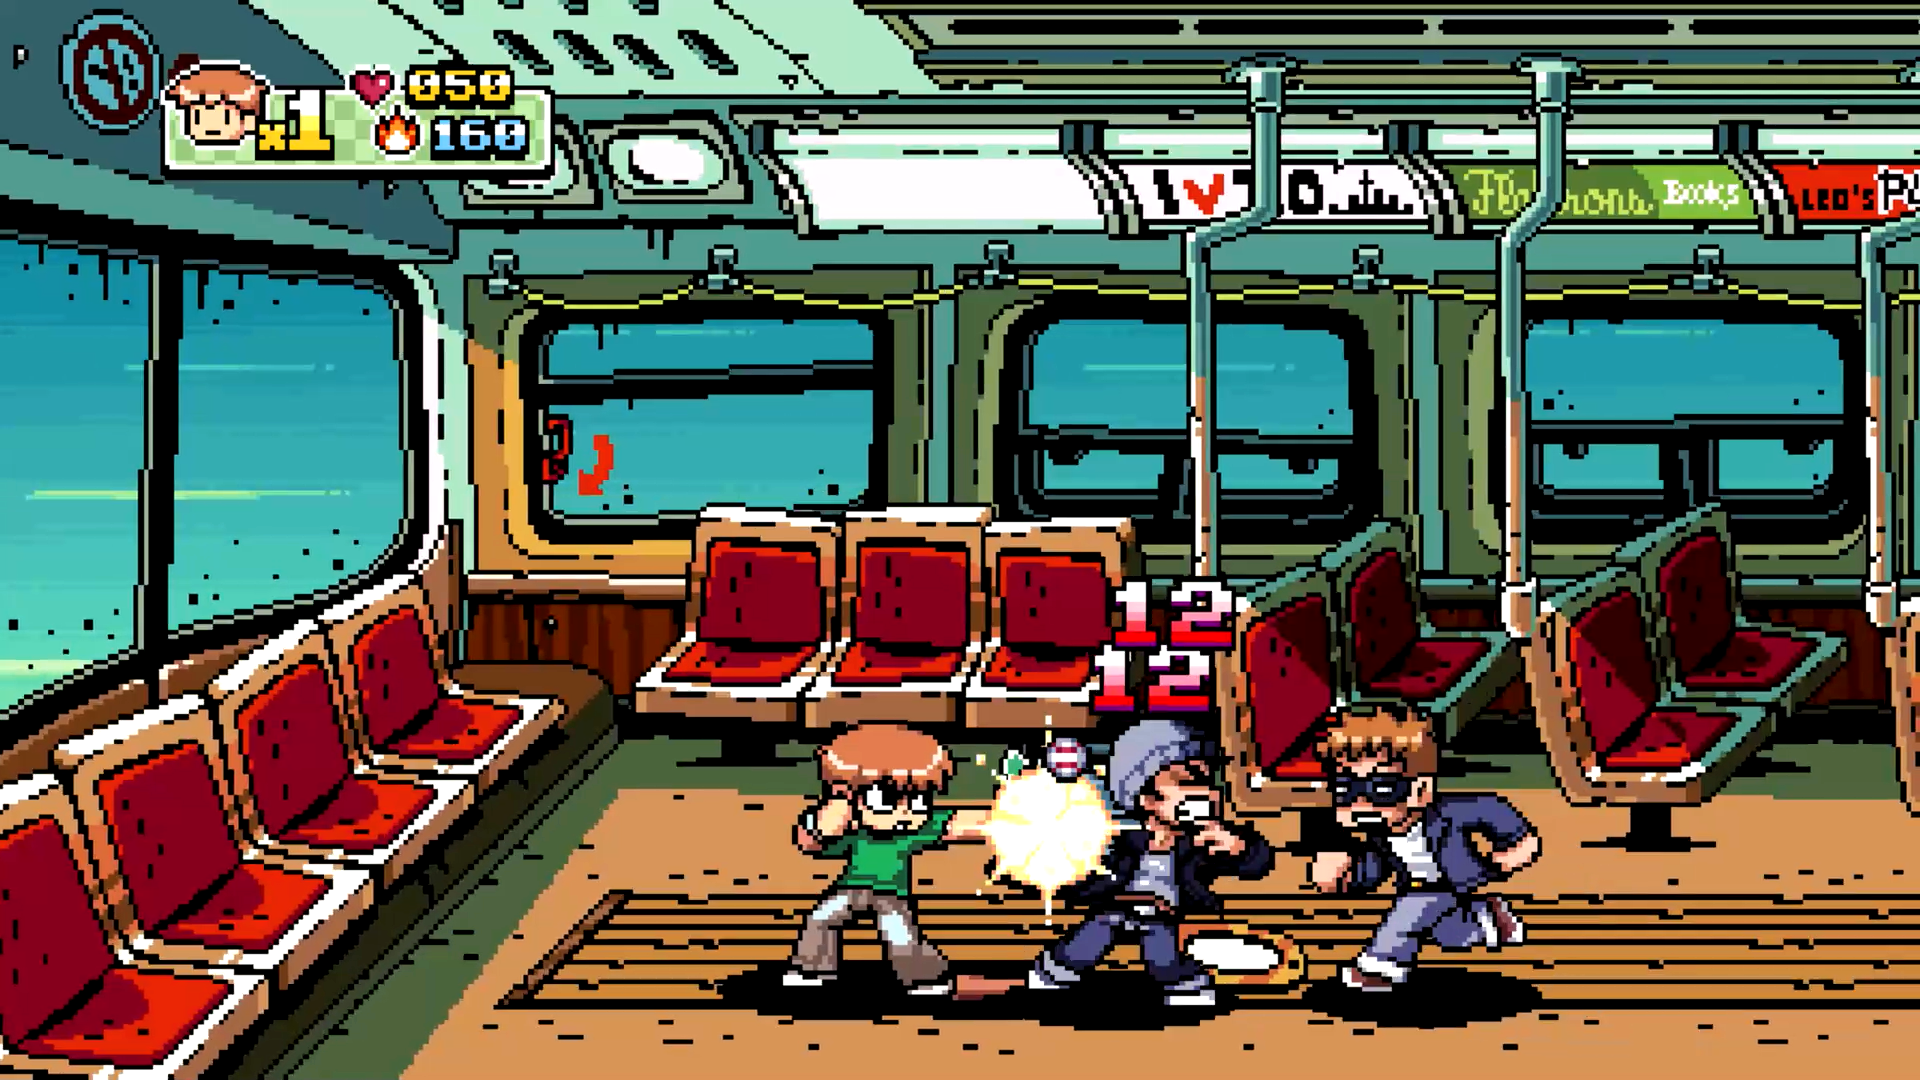 Scott Pilgrim vs. The World: The Game Complete Edition, Scott Pilgrim, PS4, Nintendo Switch, Xbox One, PlayStation 4, PC, Stadia, digital, trailer, release date, screenshots, Ubisoft